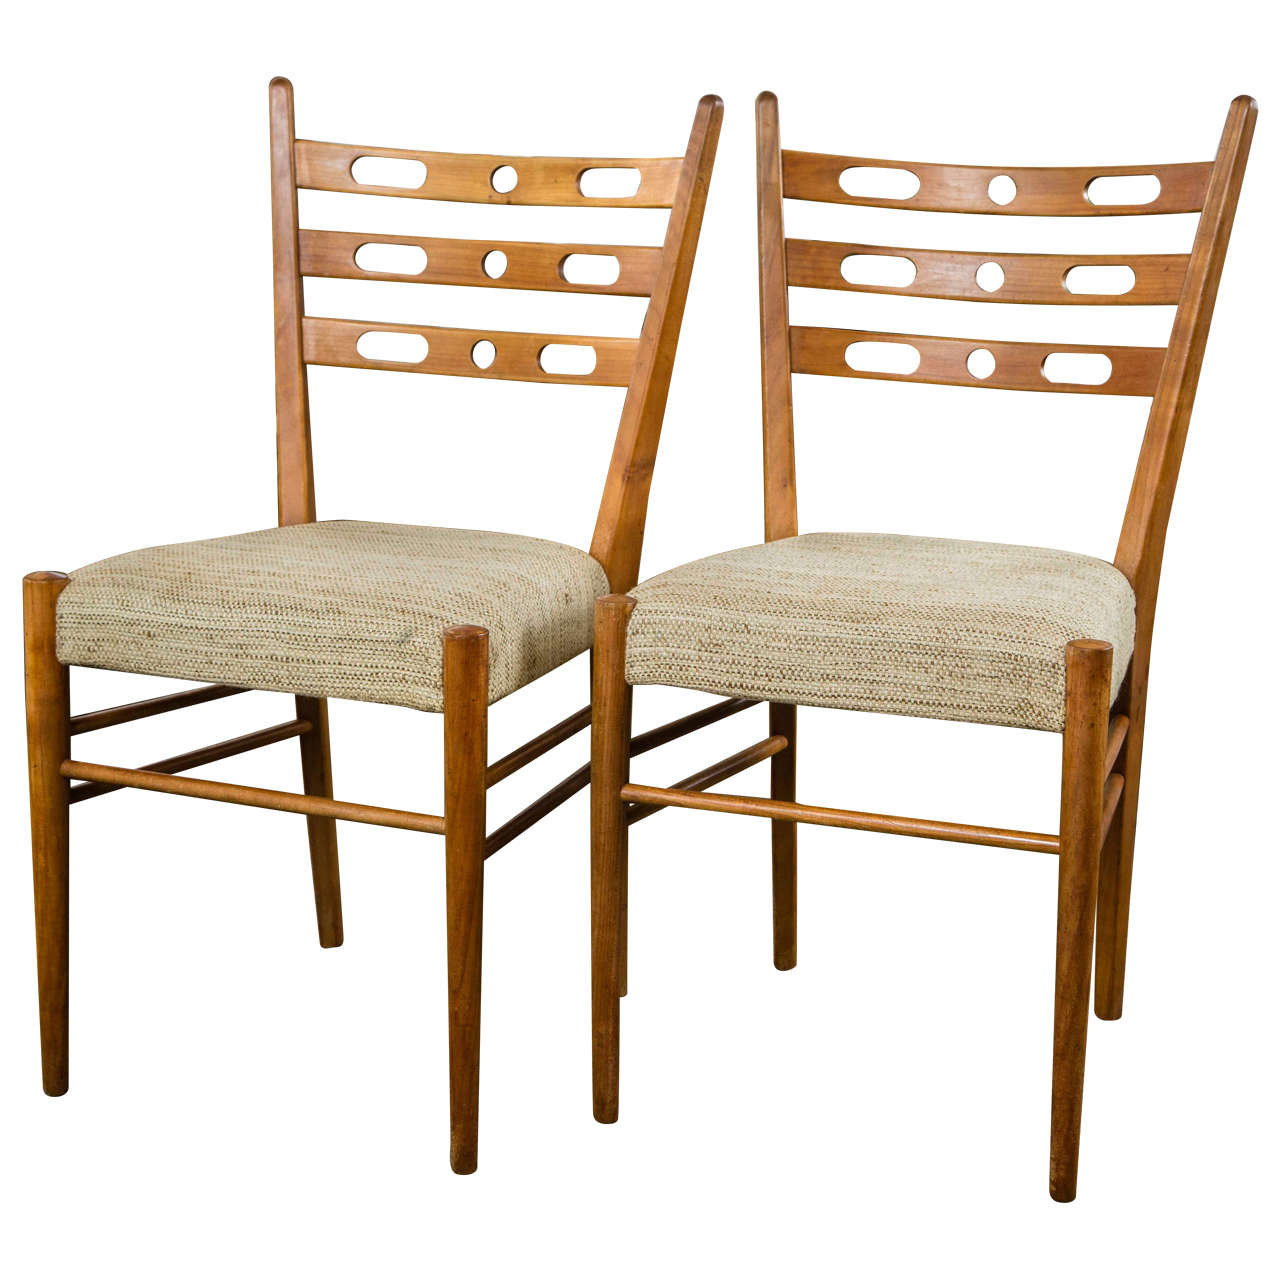 Set of Four Cherrywood Chairs